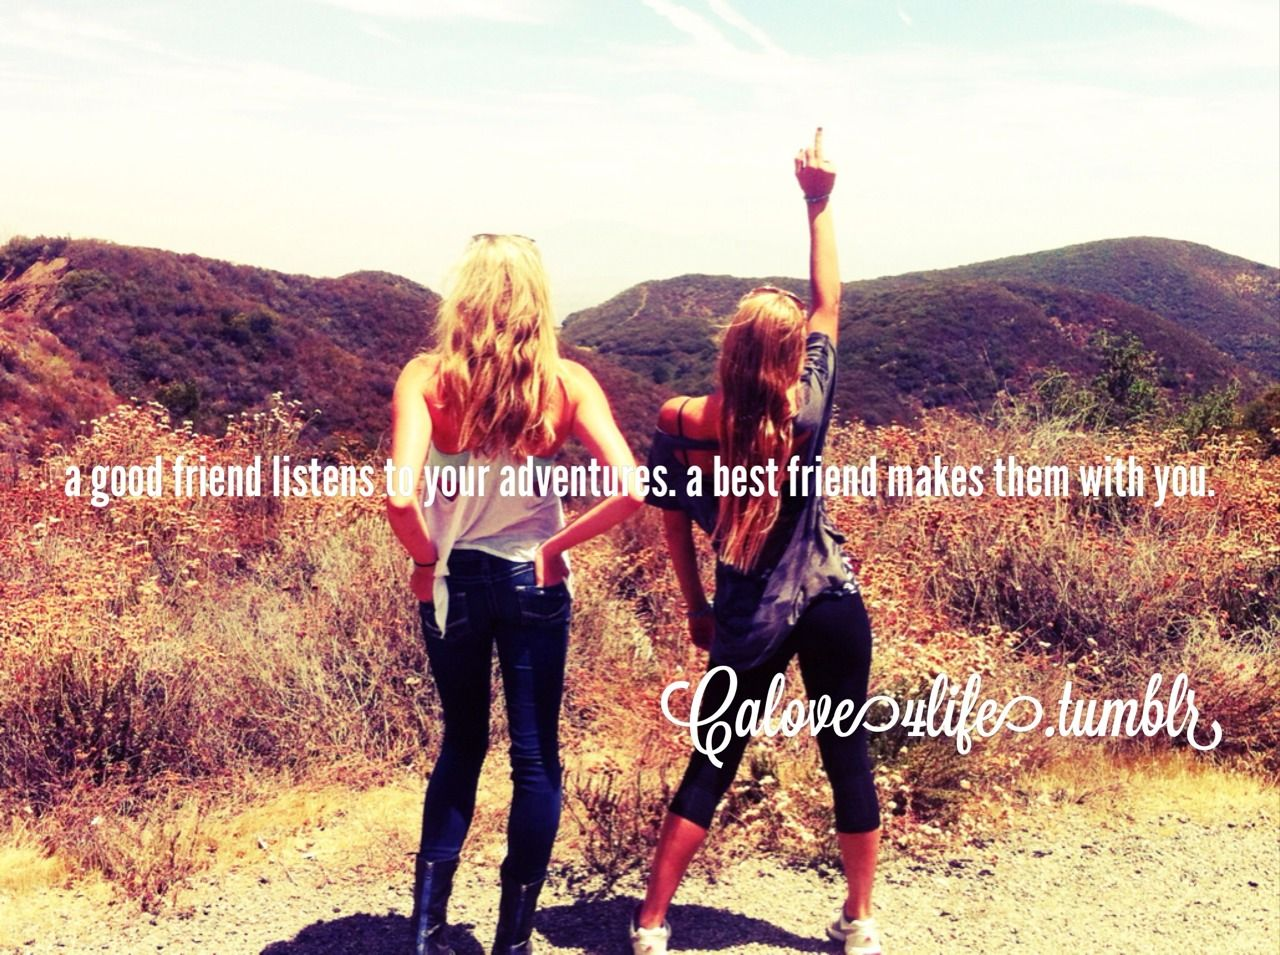 A good friend listens to your adventures, a best friend makes them